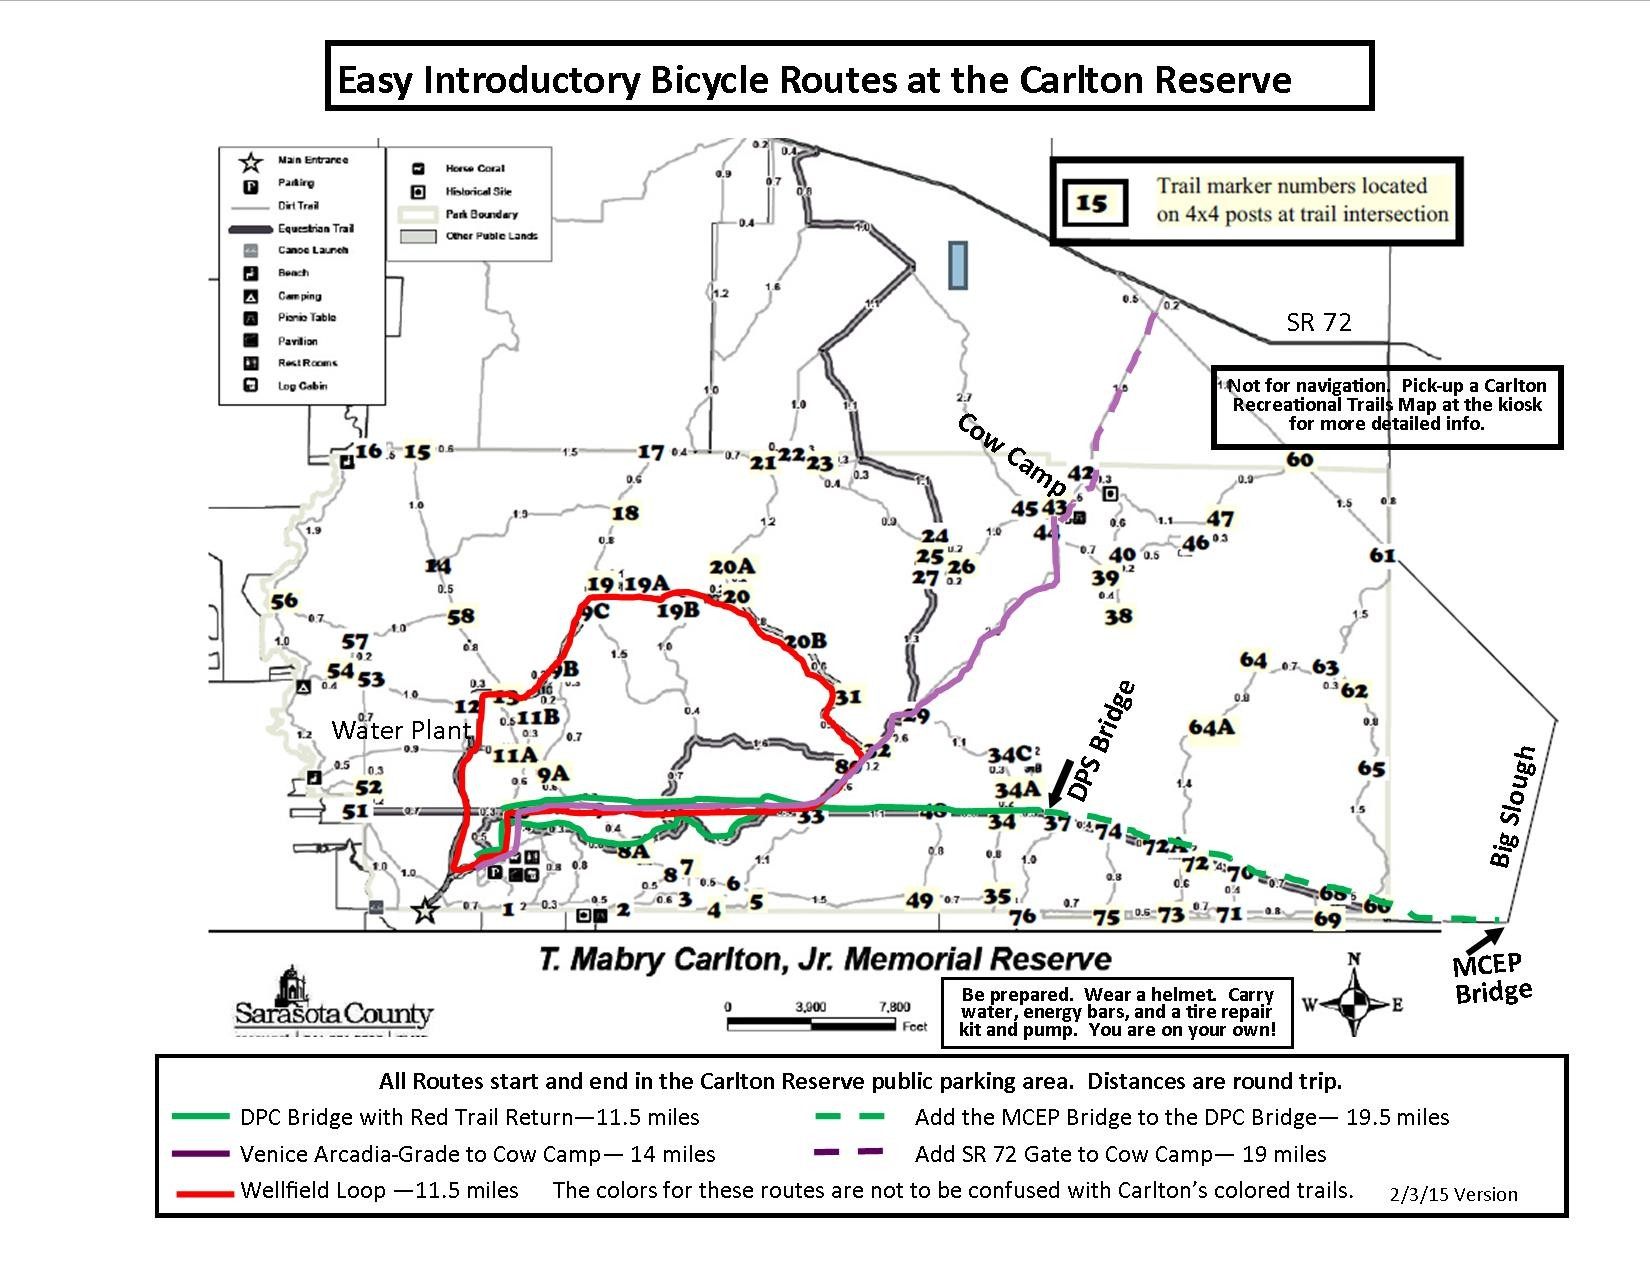 Carlton Introductory Bicycling Loops